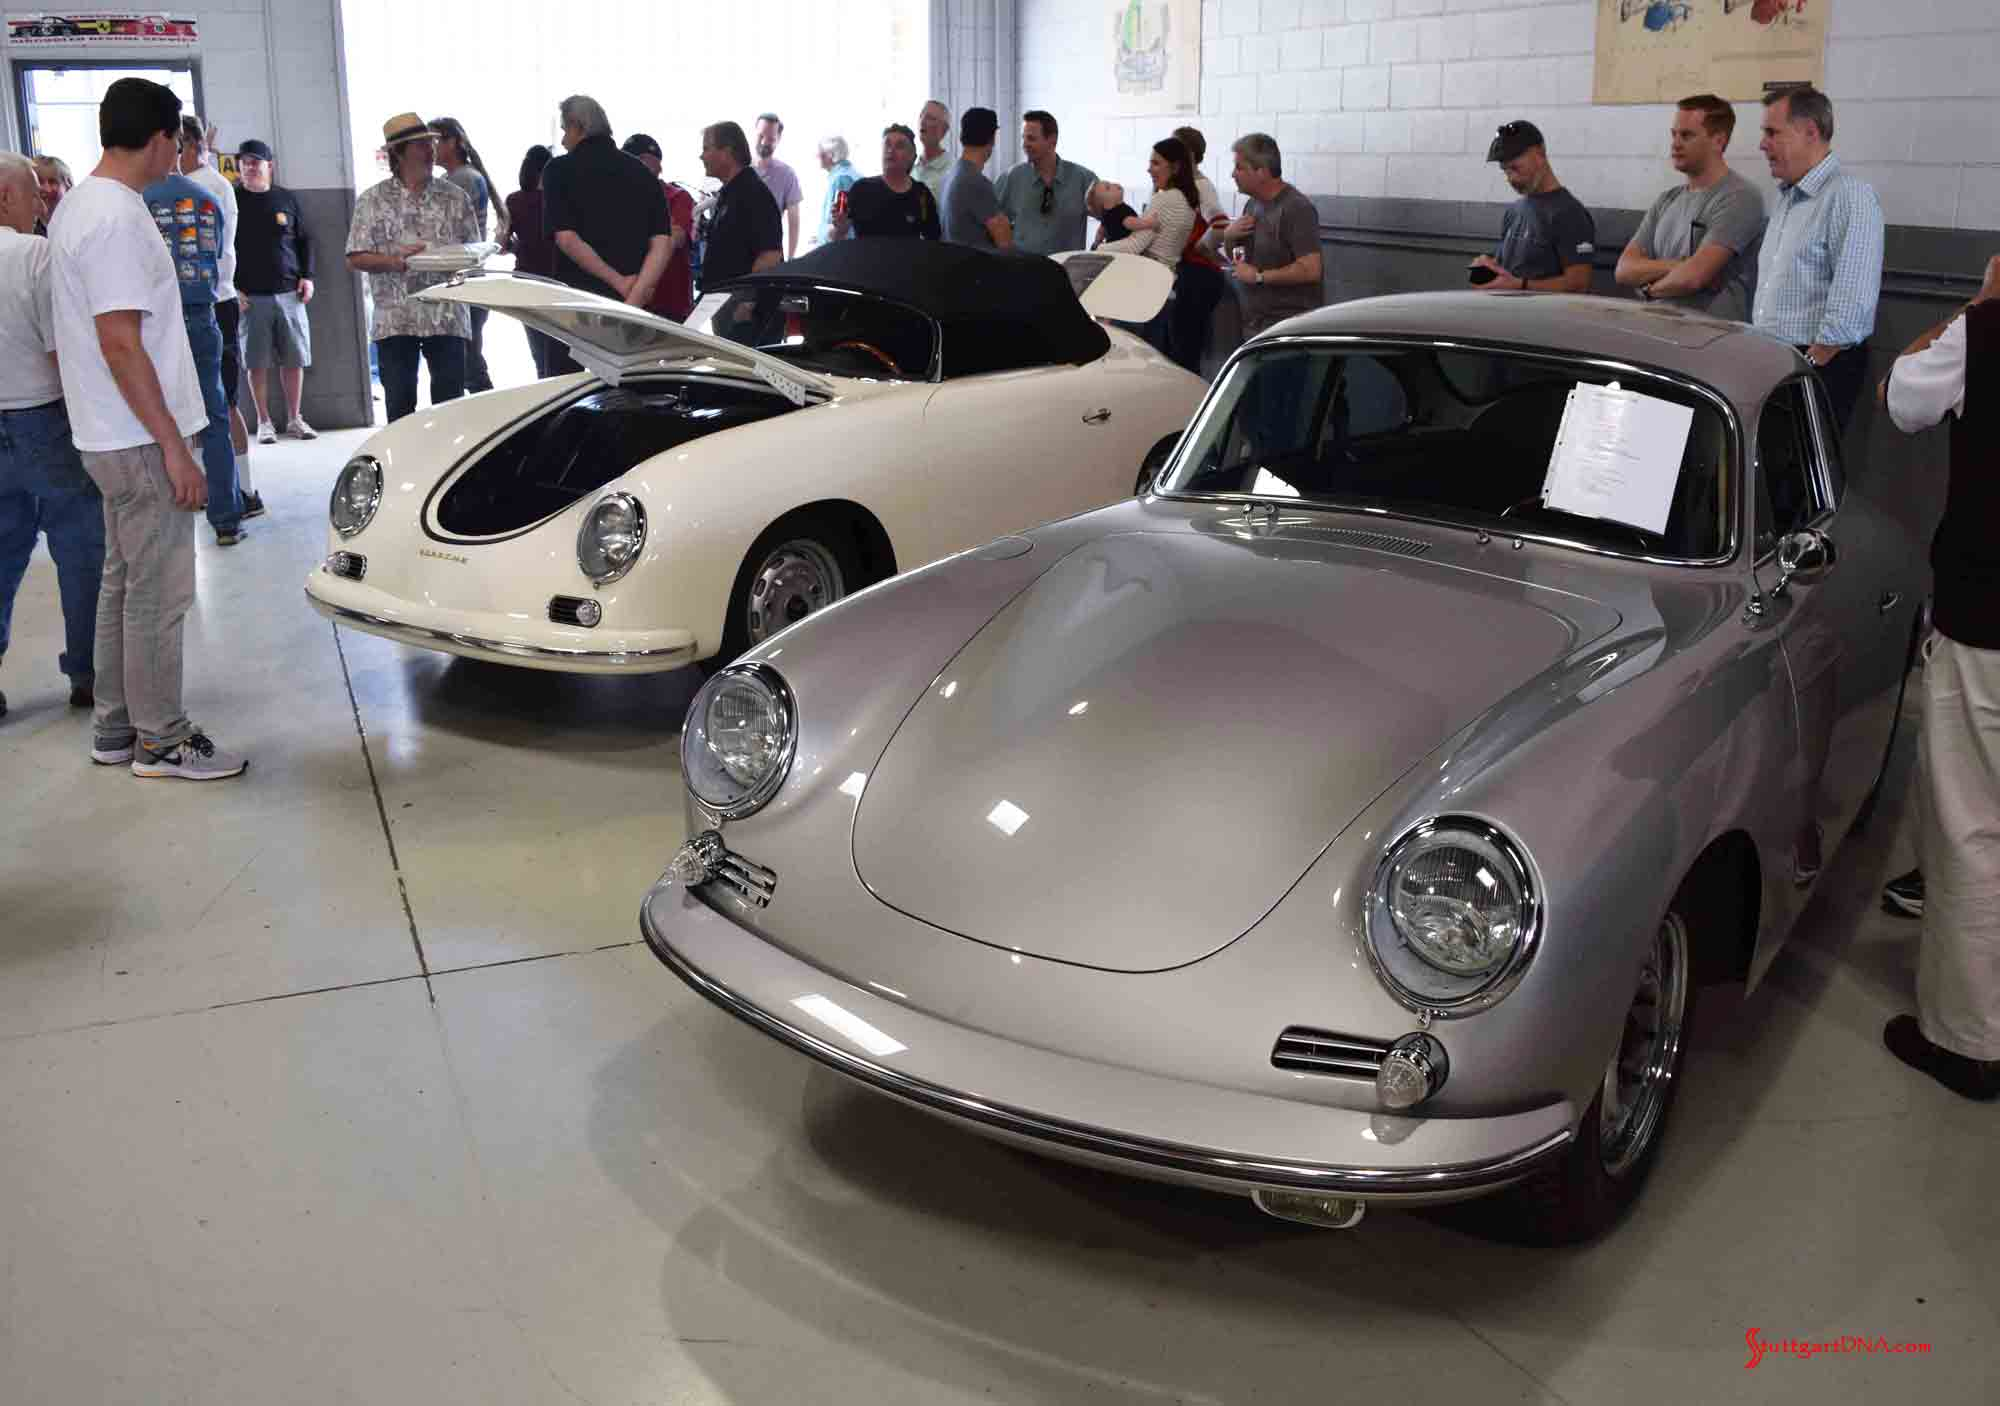 2017 Porsche L.A. Literature, Toy and Memorabilia Meet Weekend: Pictured here is the Willhoit Auto Restoration main shop floor with a white 1957 GT Speedster Carrera in bg. Credit: StuttgartDNA. Early all-steel-bodied GT built at Werks. 547/1 GT engine on test stand in b.g., ready to install. Credit: StuttgartDNA